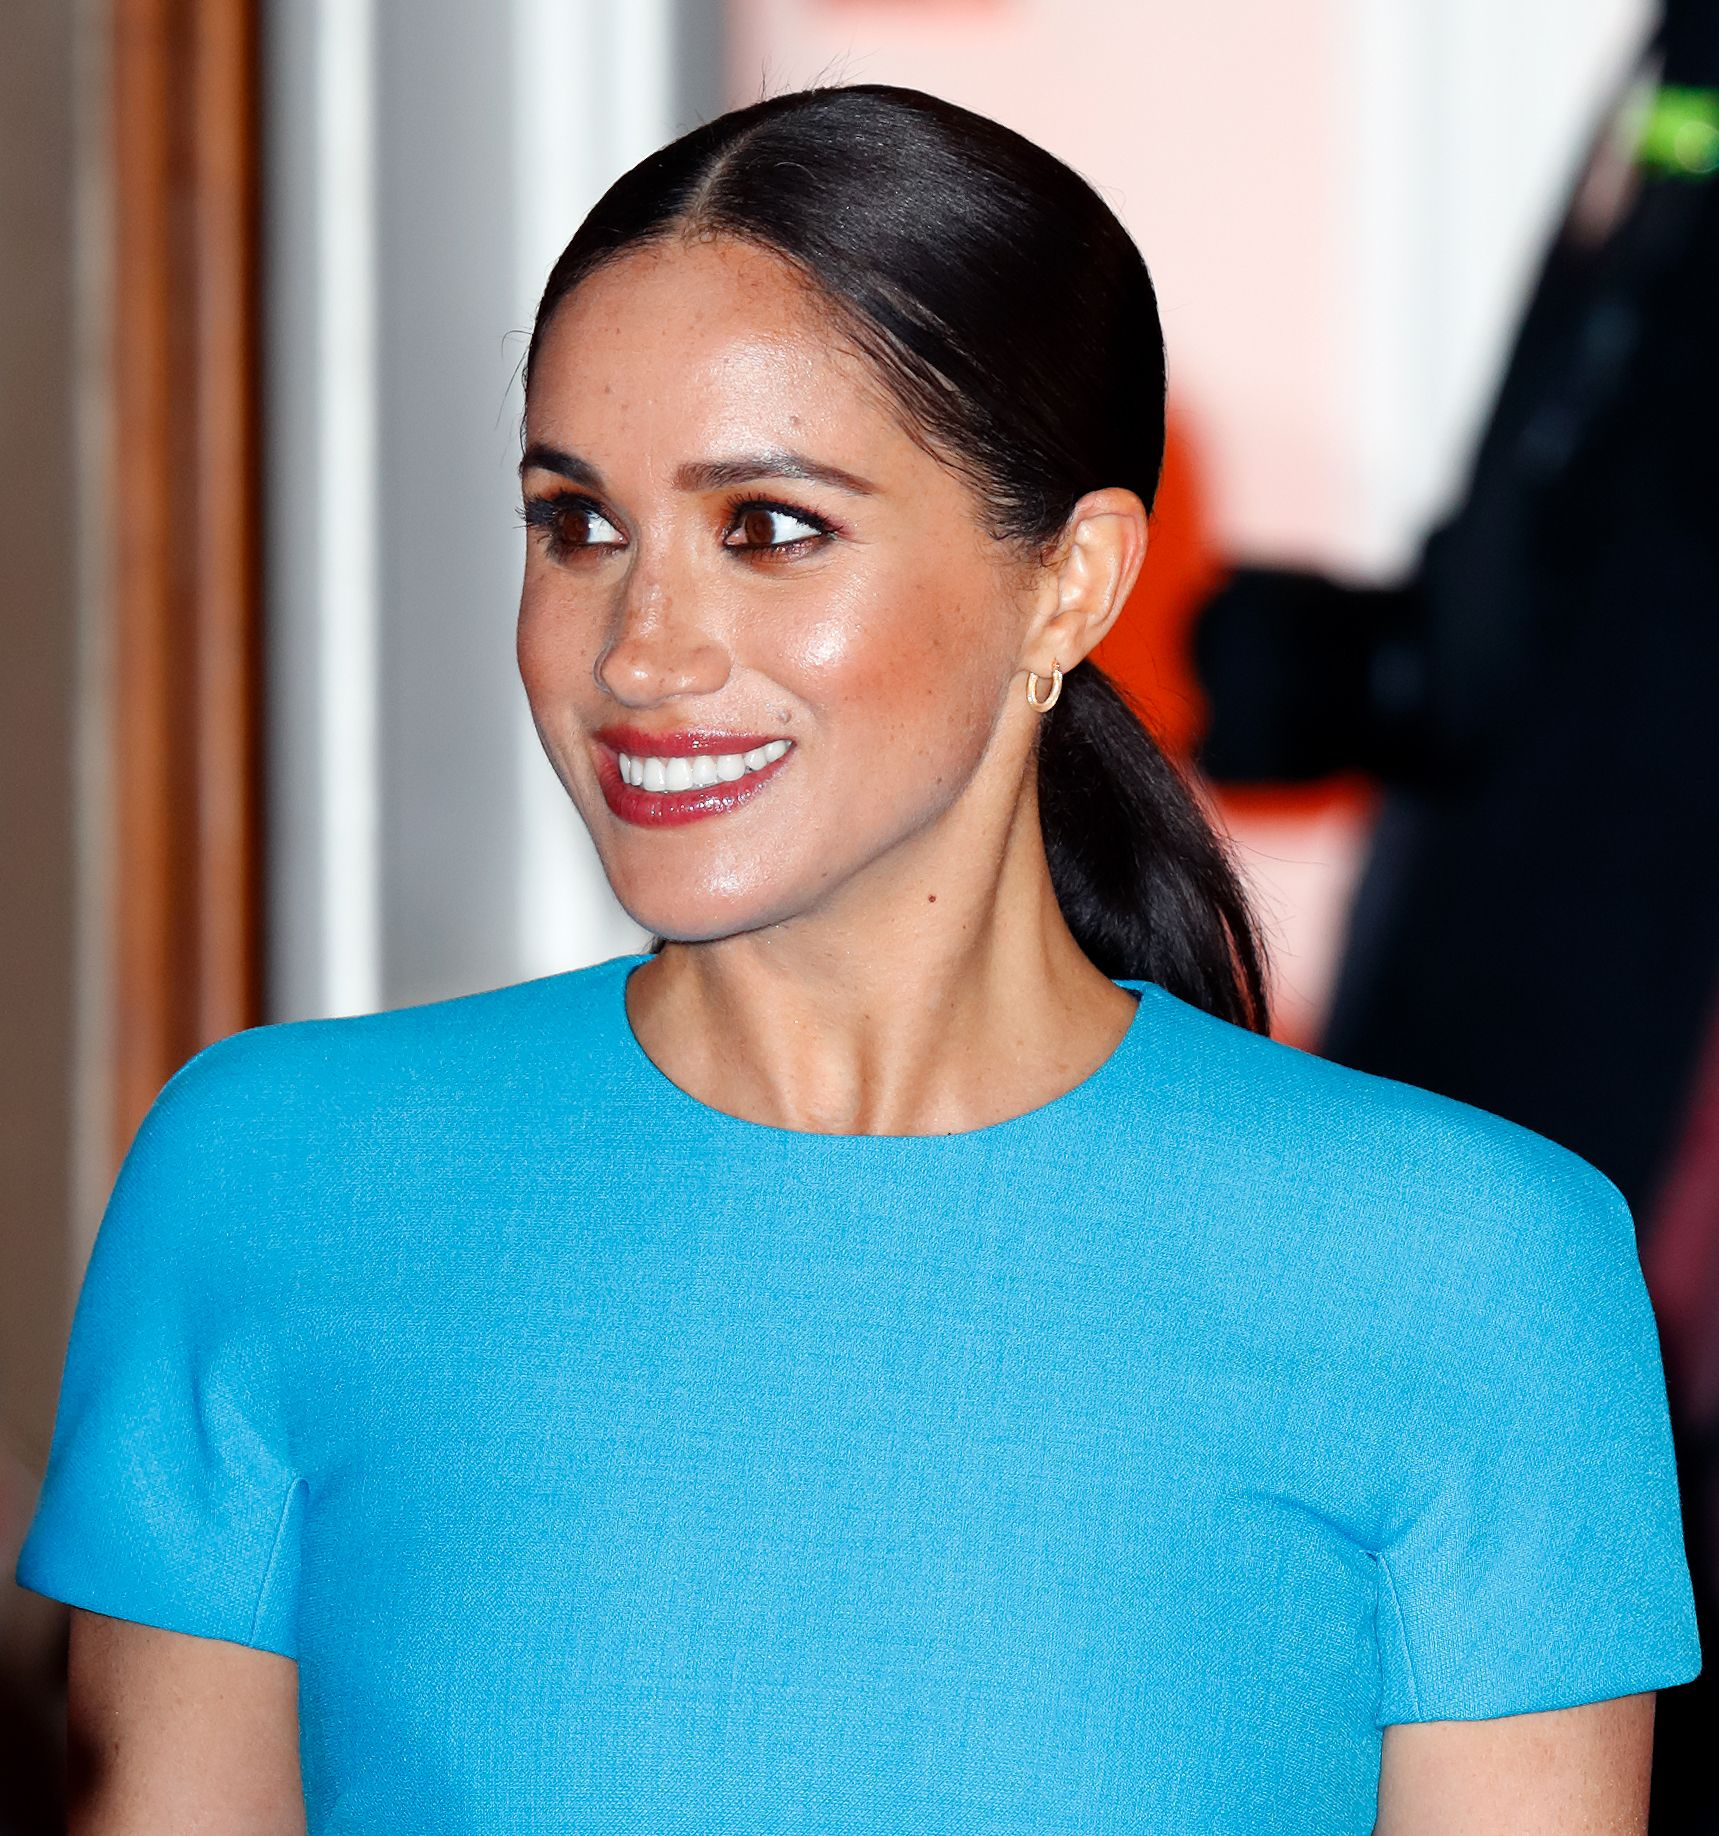 Meghan Markle at the Endeavour Fund Awards at Mansion House on March 5, 2020 | Photo: Getty Images